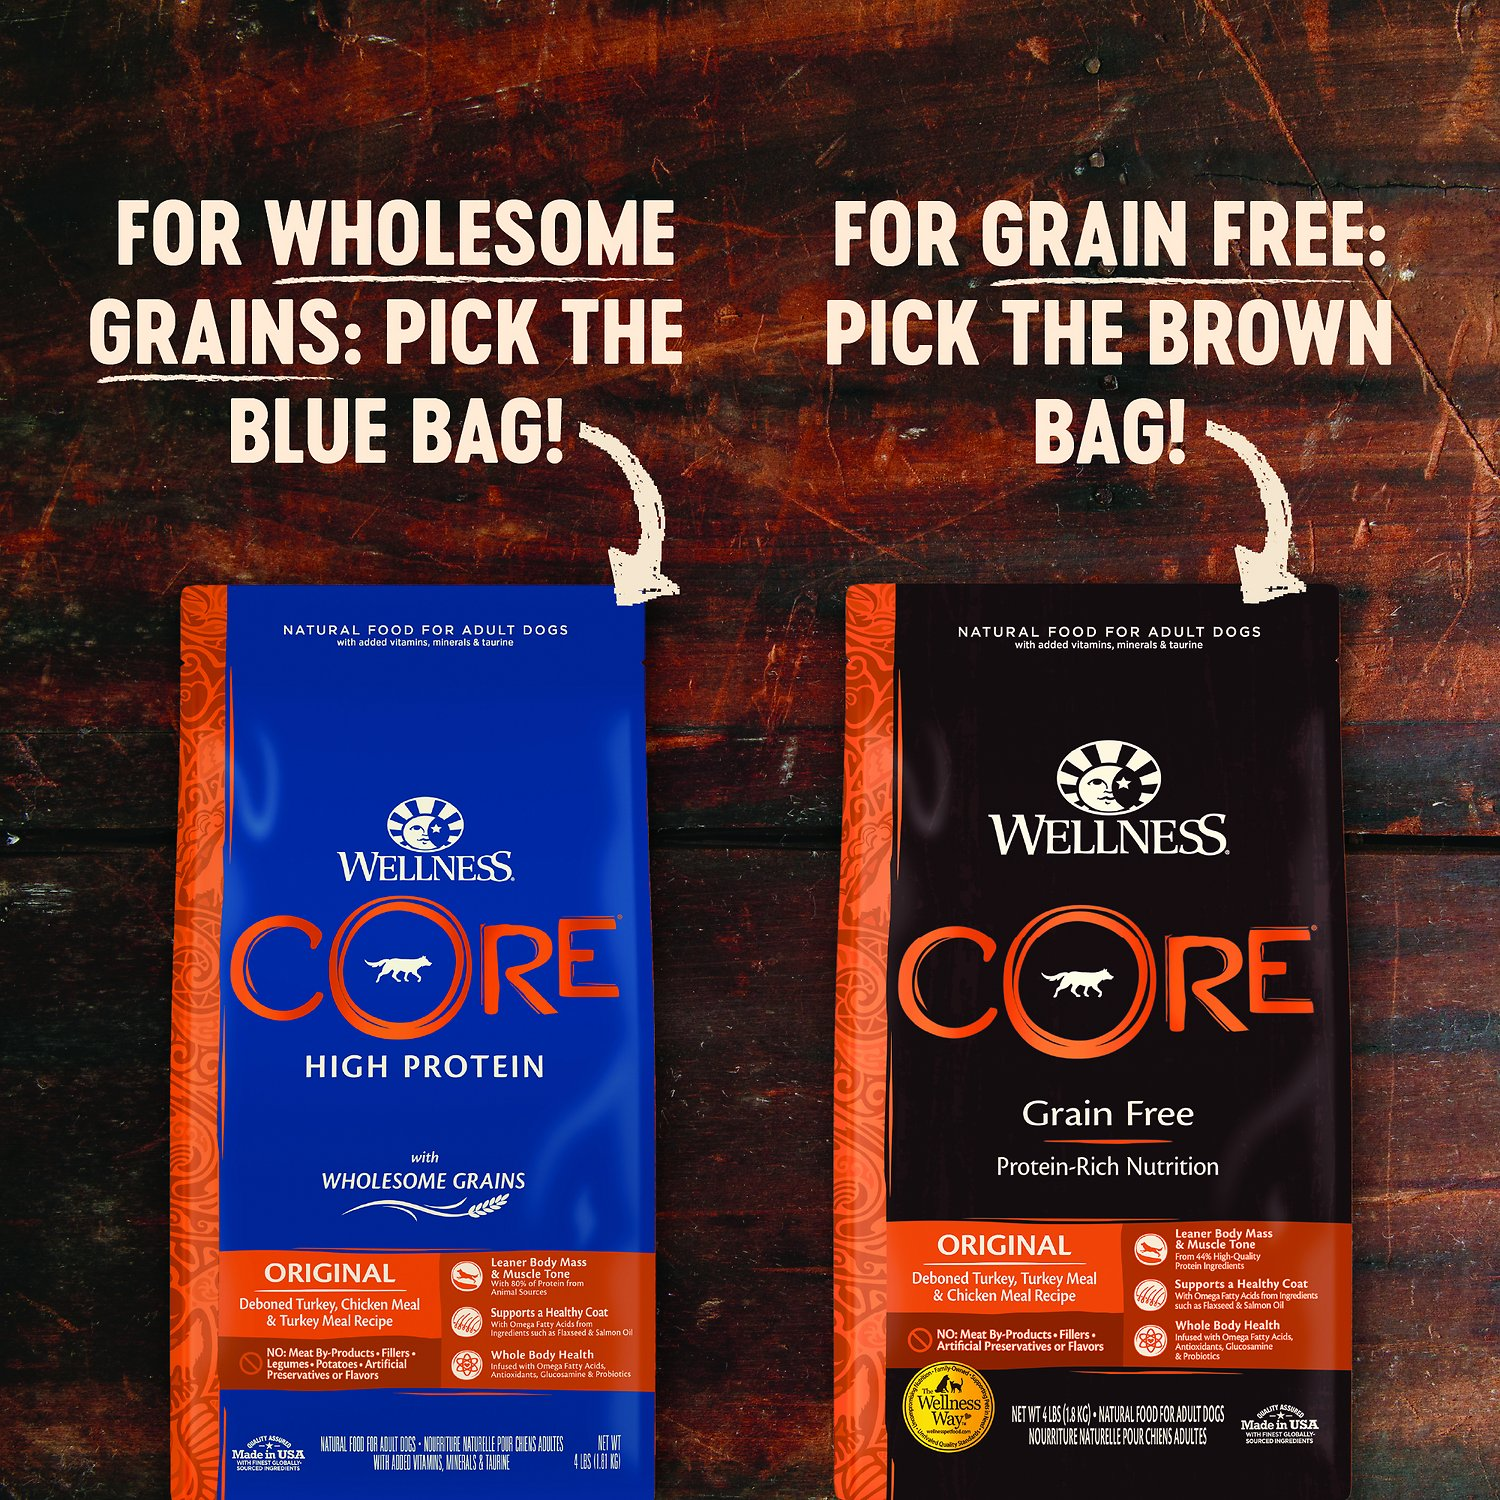 Wellness Core Grain Free Original Deboned Turkey Turkey